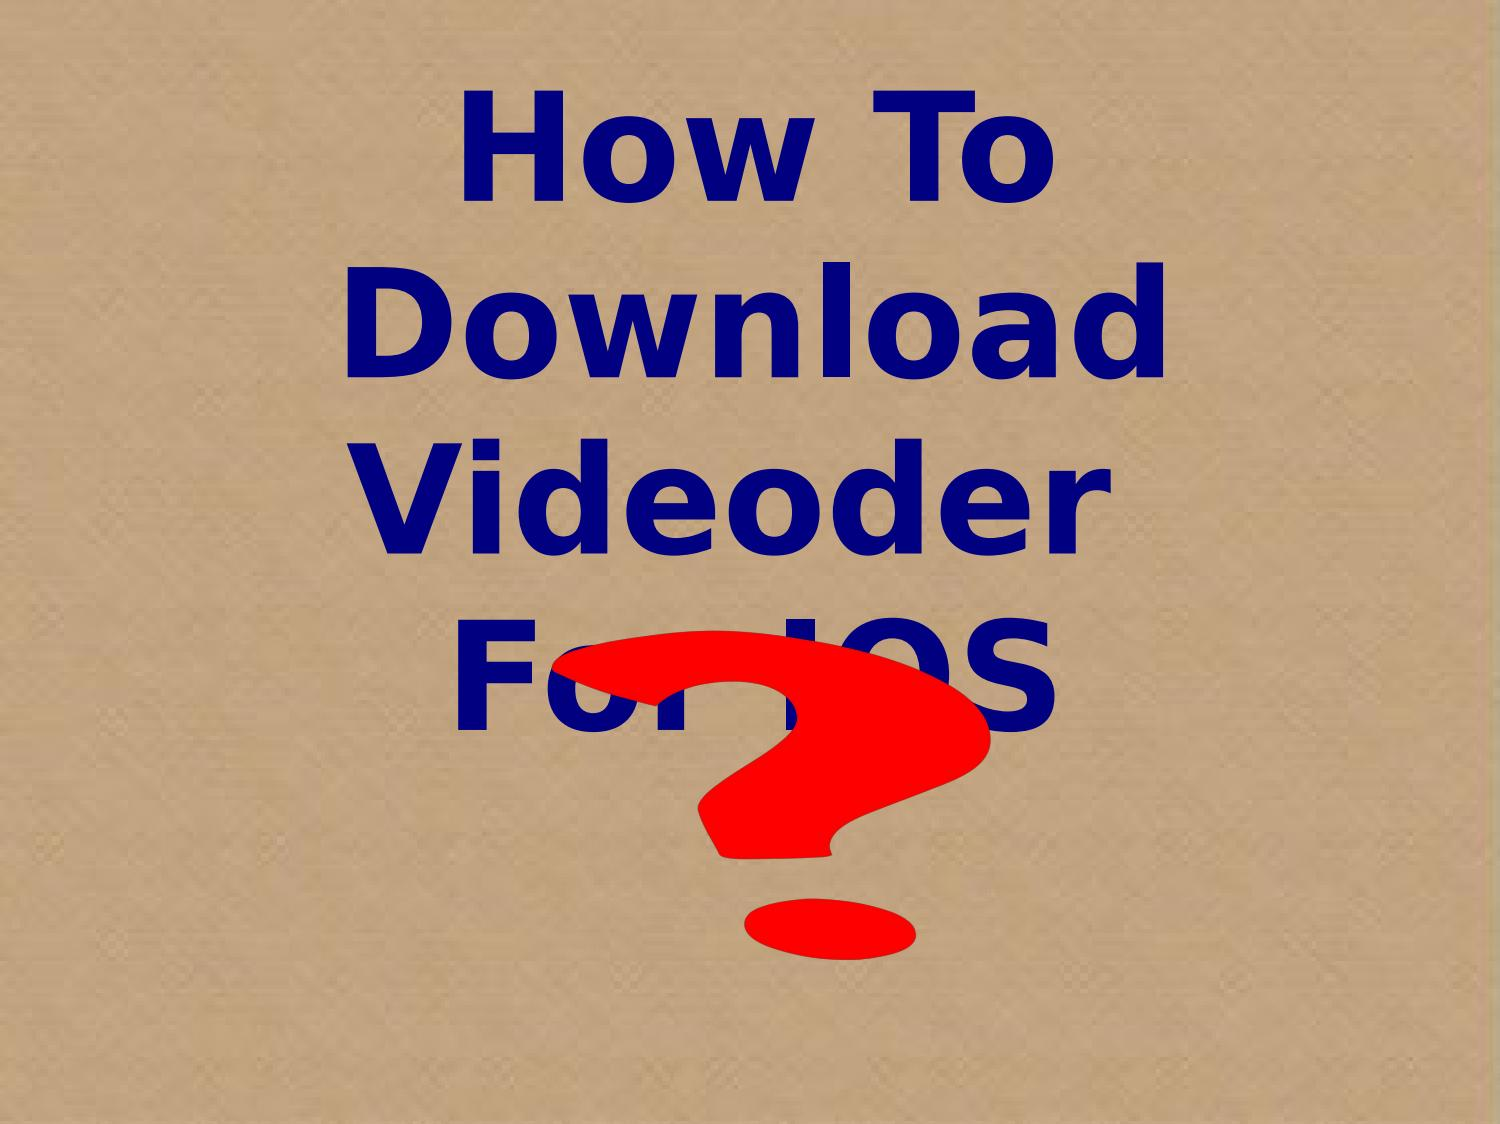 How to download videoder for ios by Bridget Perry - issuu